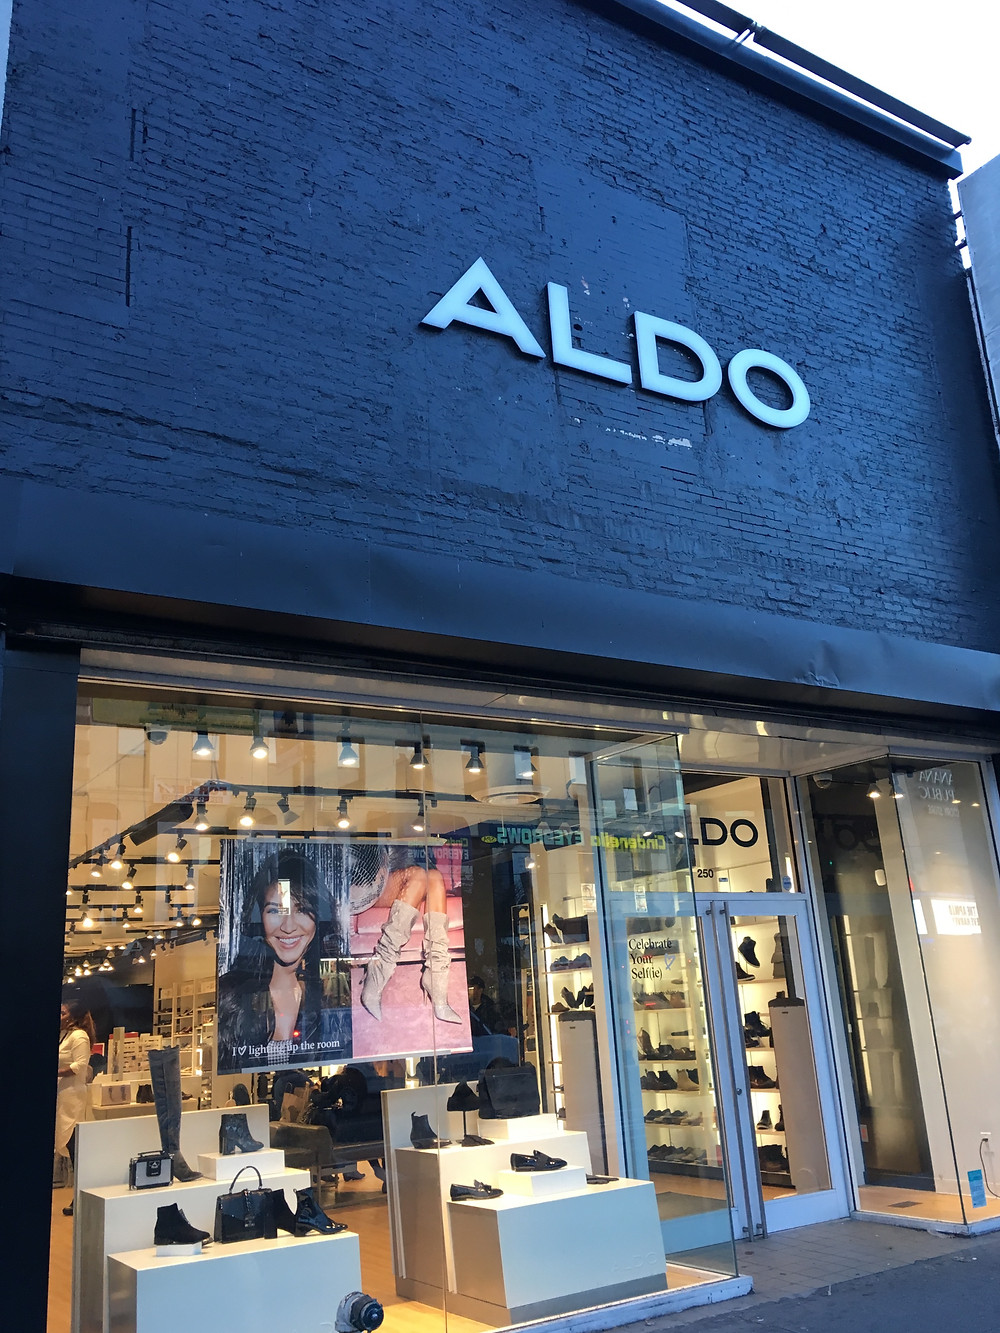 Aldo shoes in Harlem